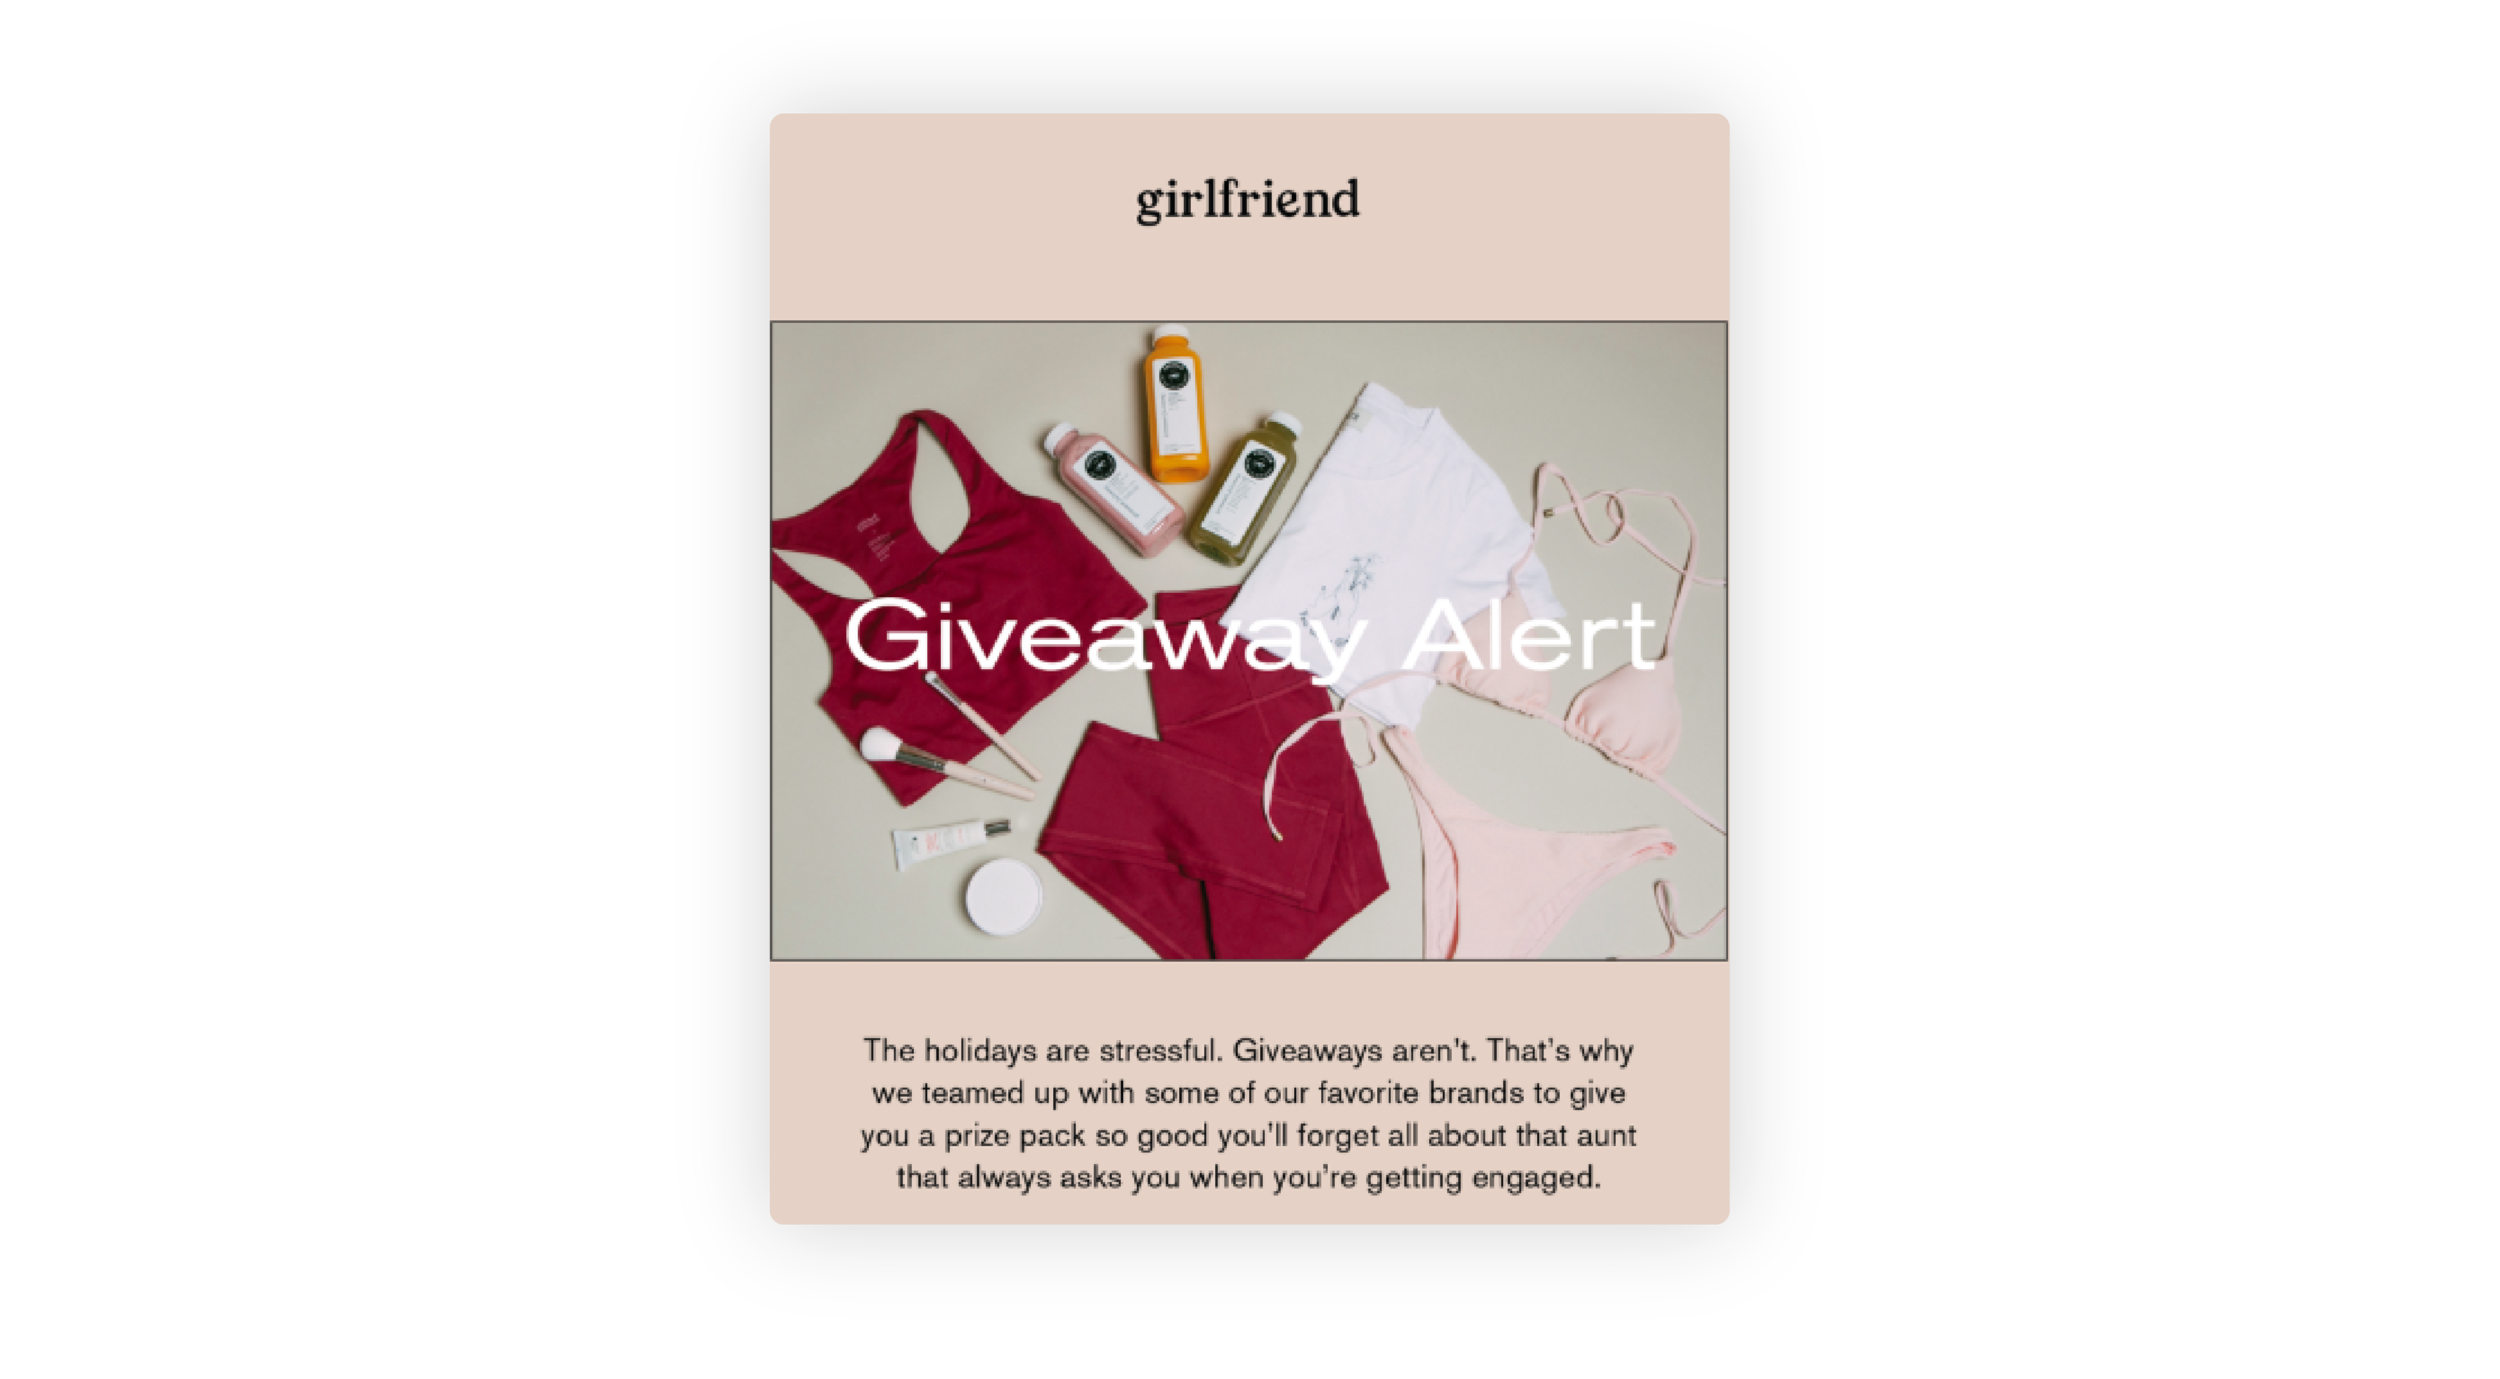 Girlfriend's Giveaway Alert email campaign offering customers a holiday season freebie